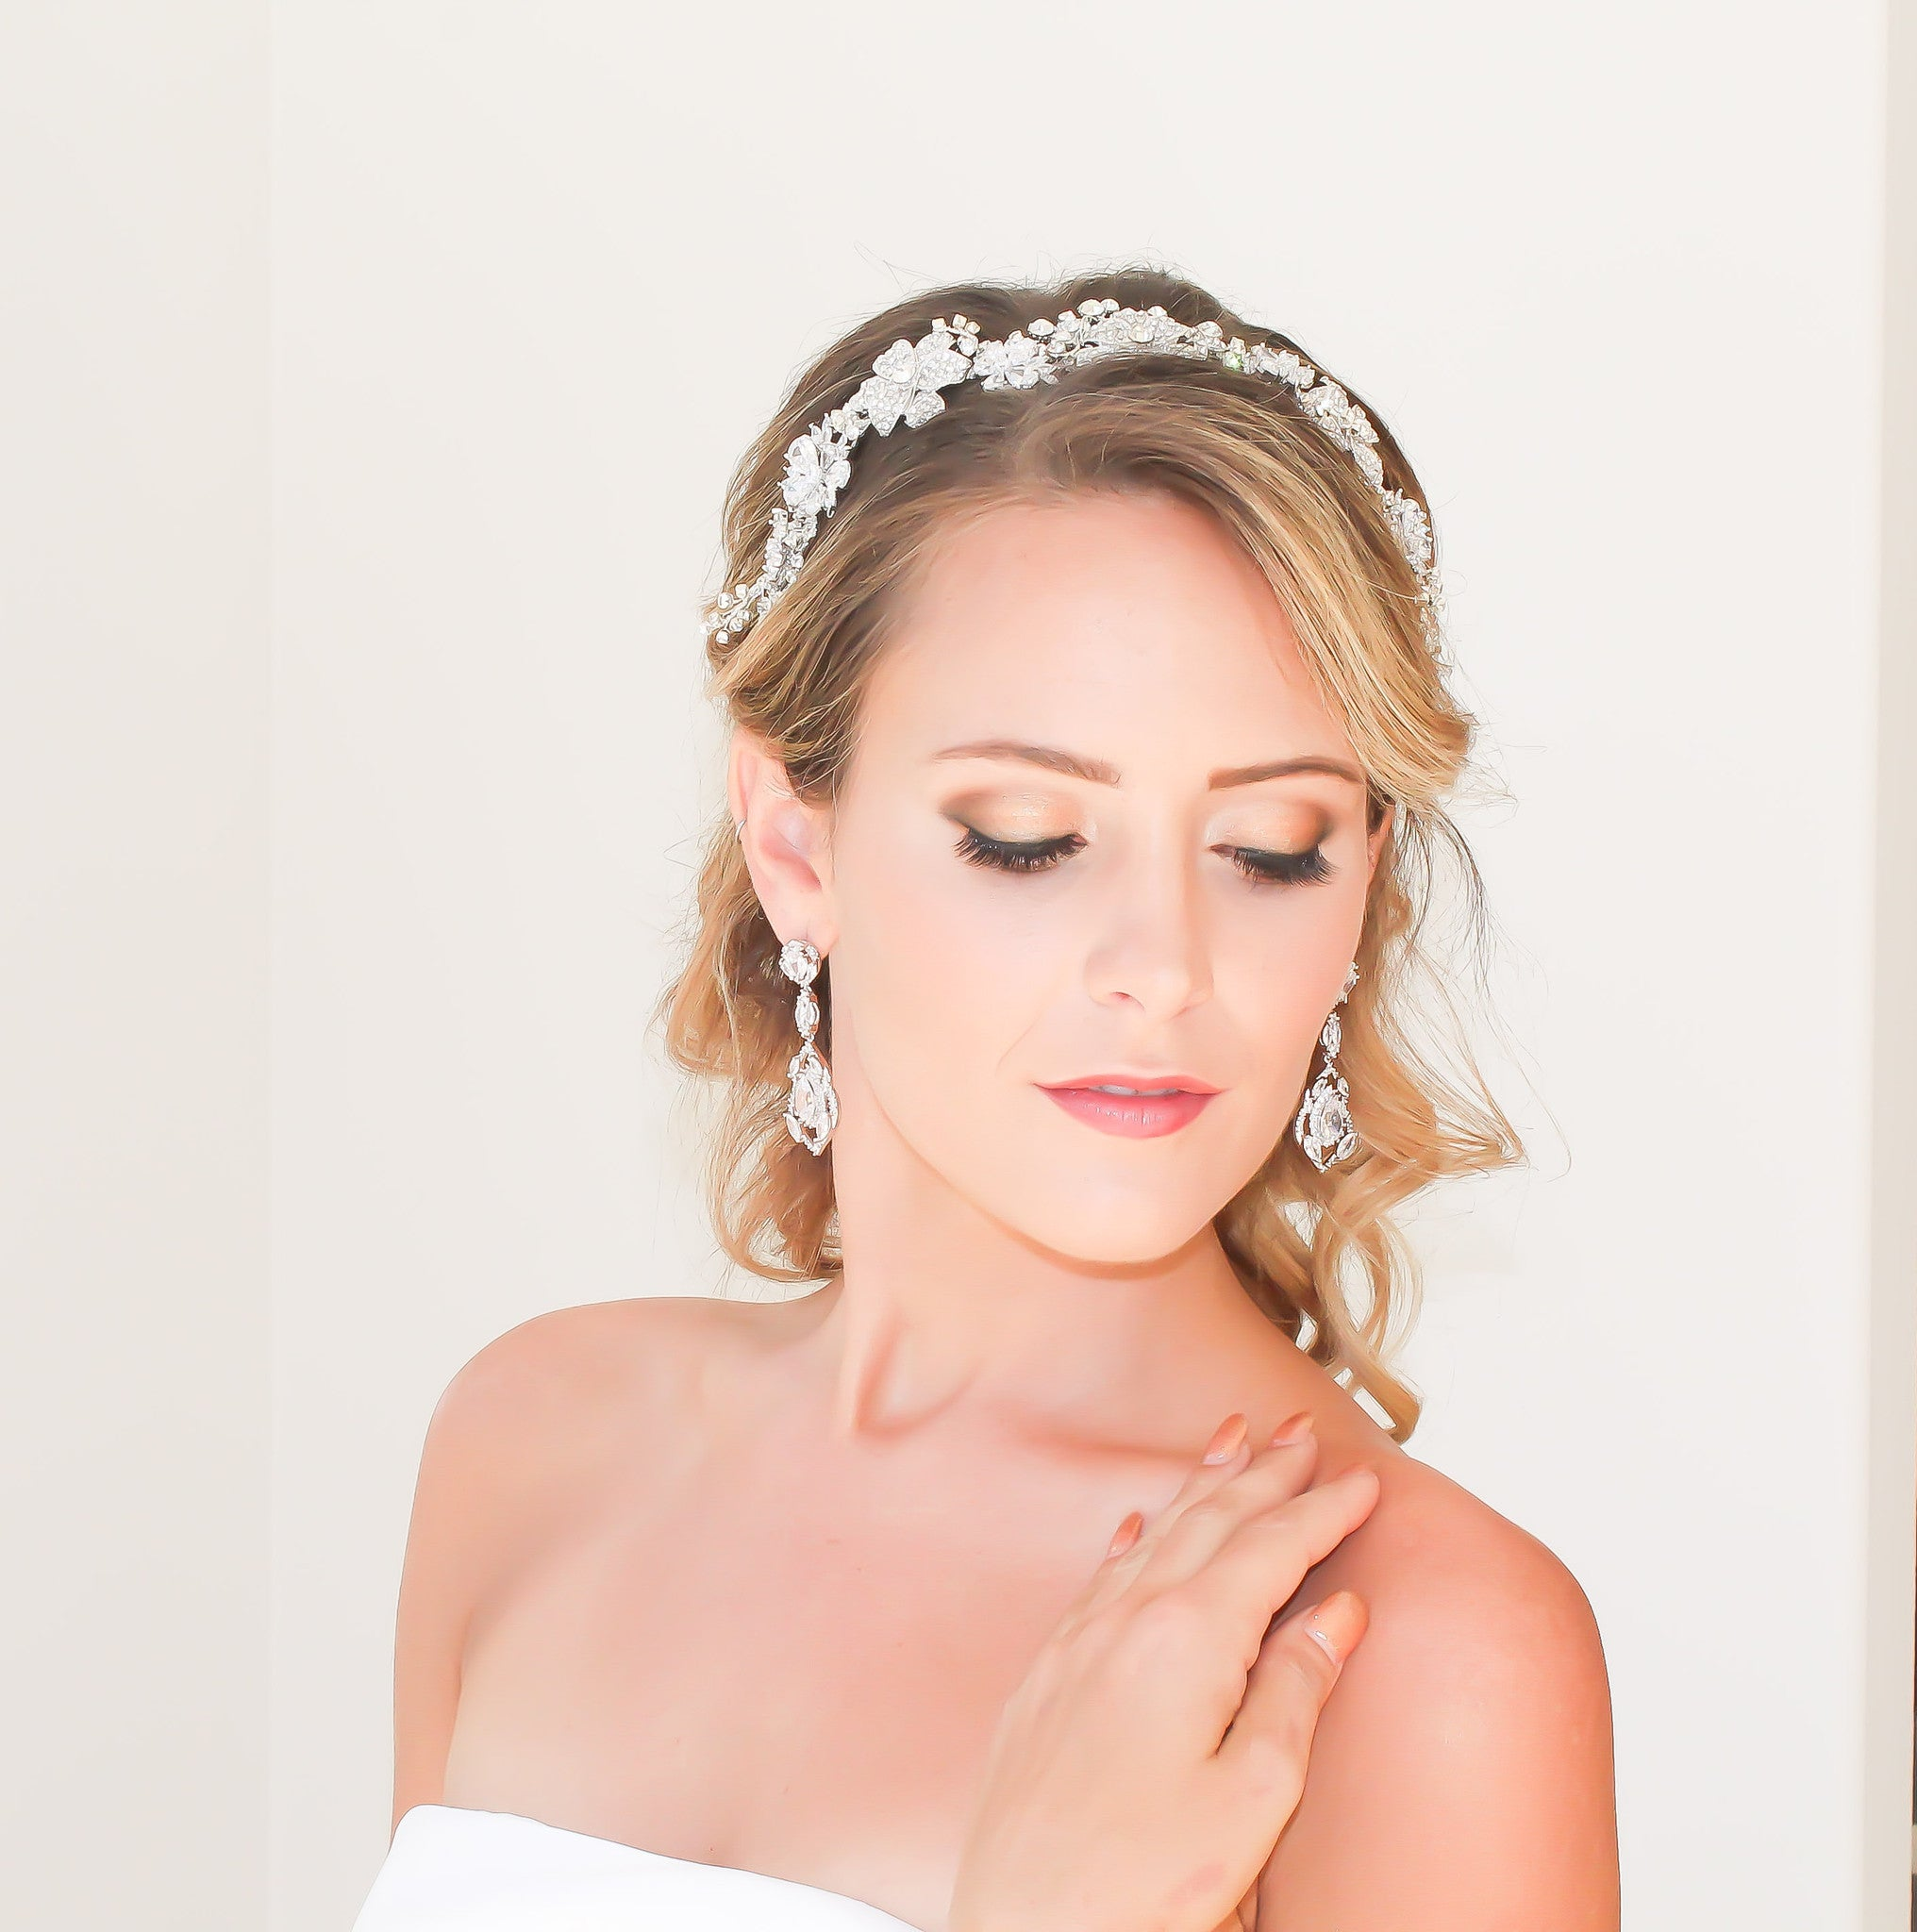 Bridal Hair Band Handcrafted With Swarovski Crystals- Bride Glamor